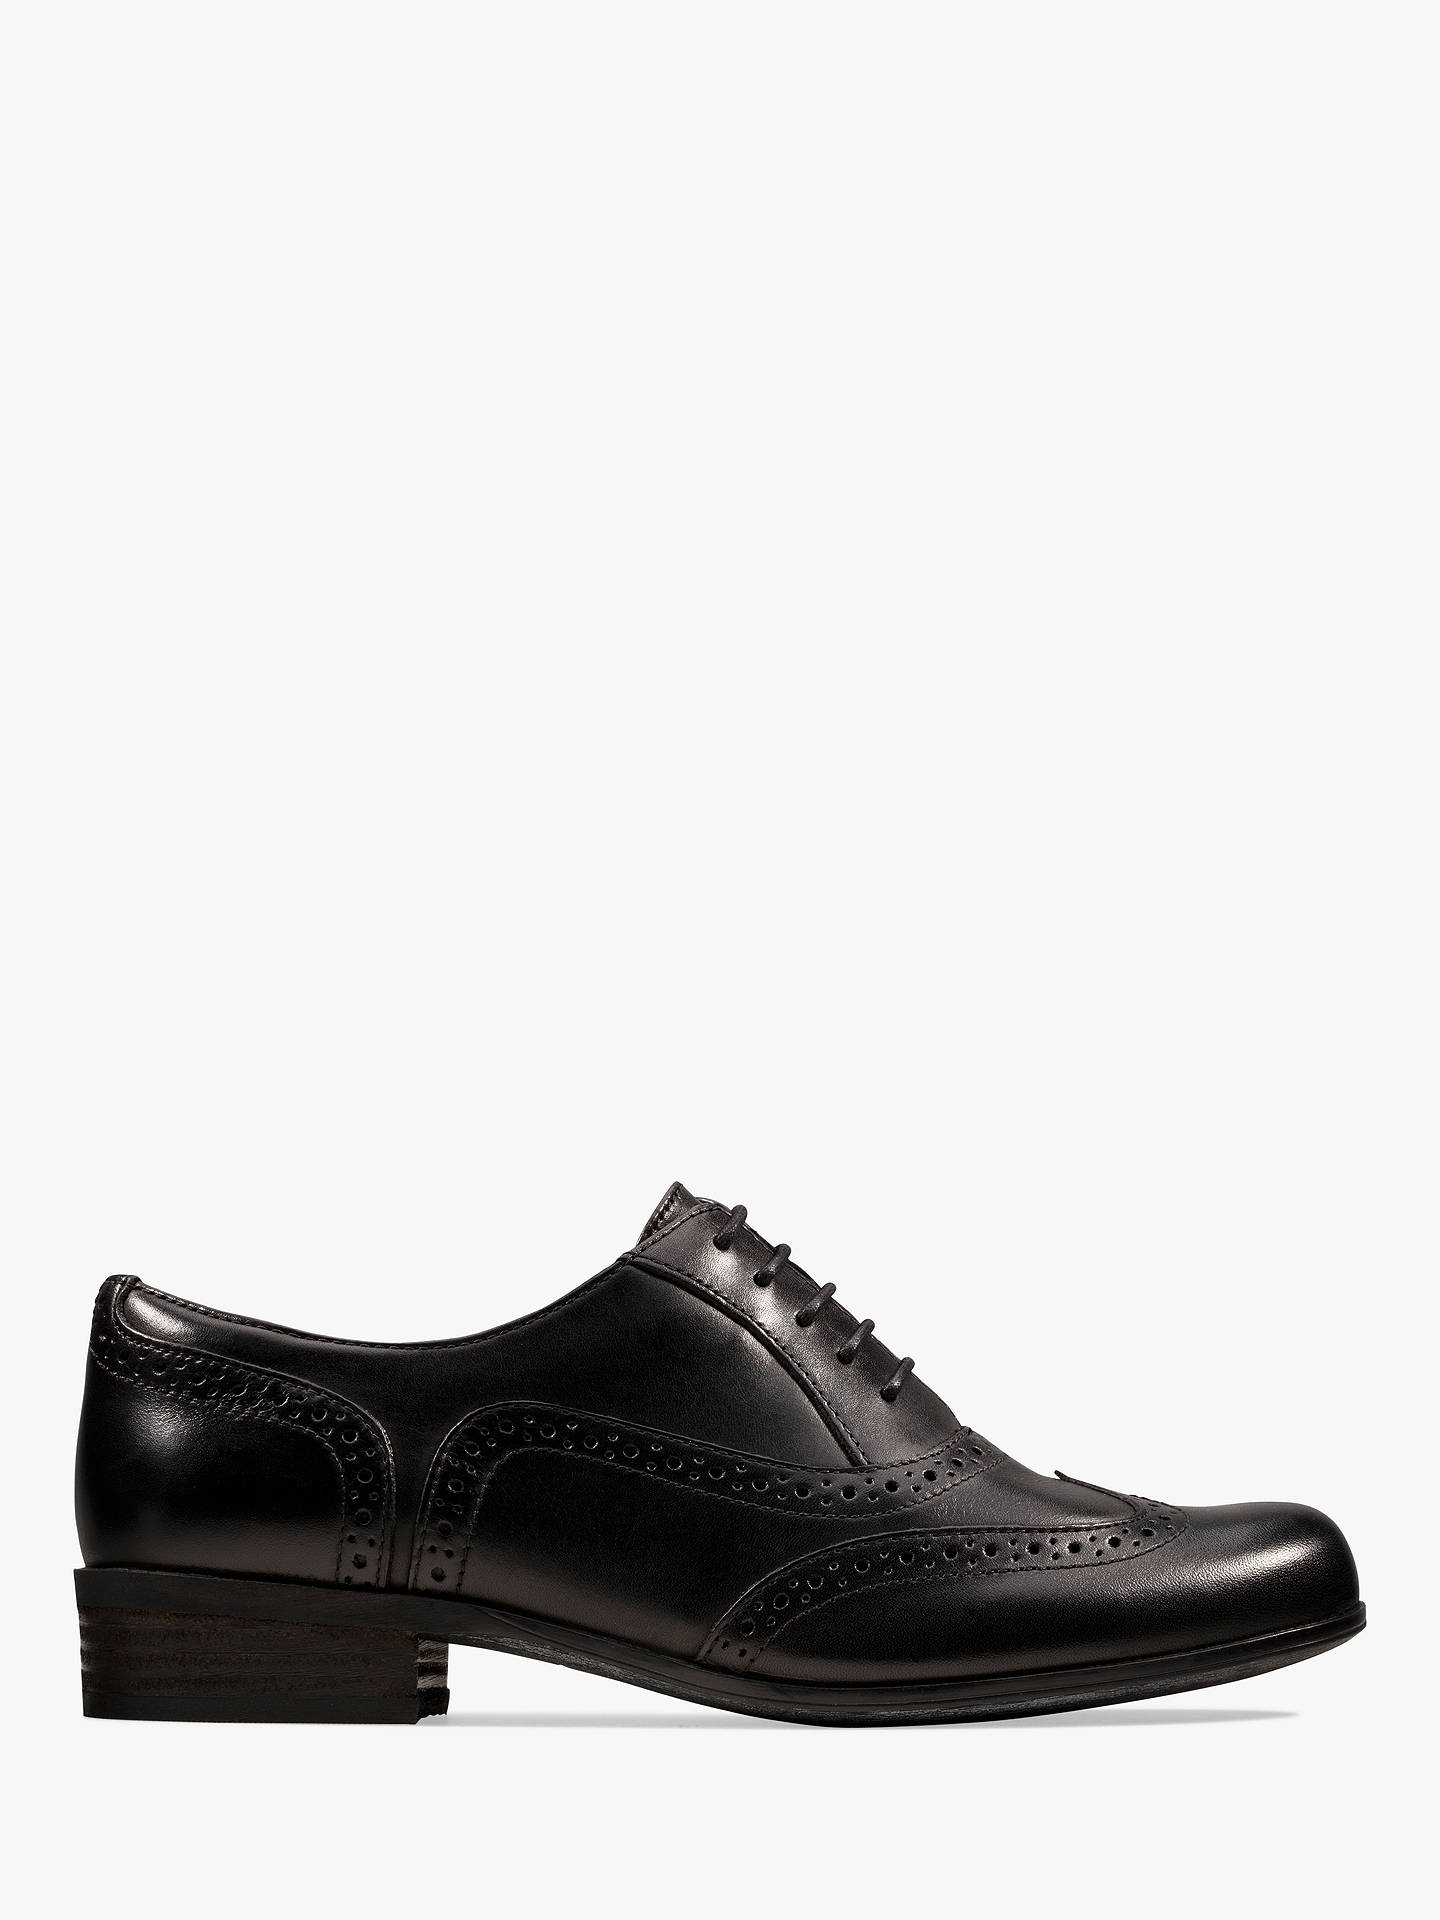 Clarks Hamble Leather Lace Up Brogues, Black by Clarks